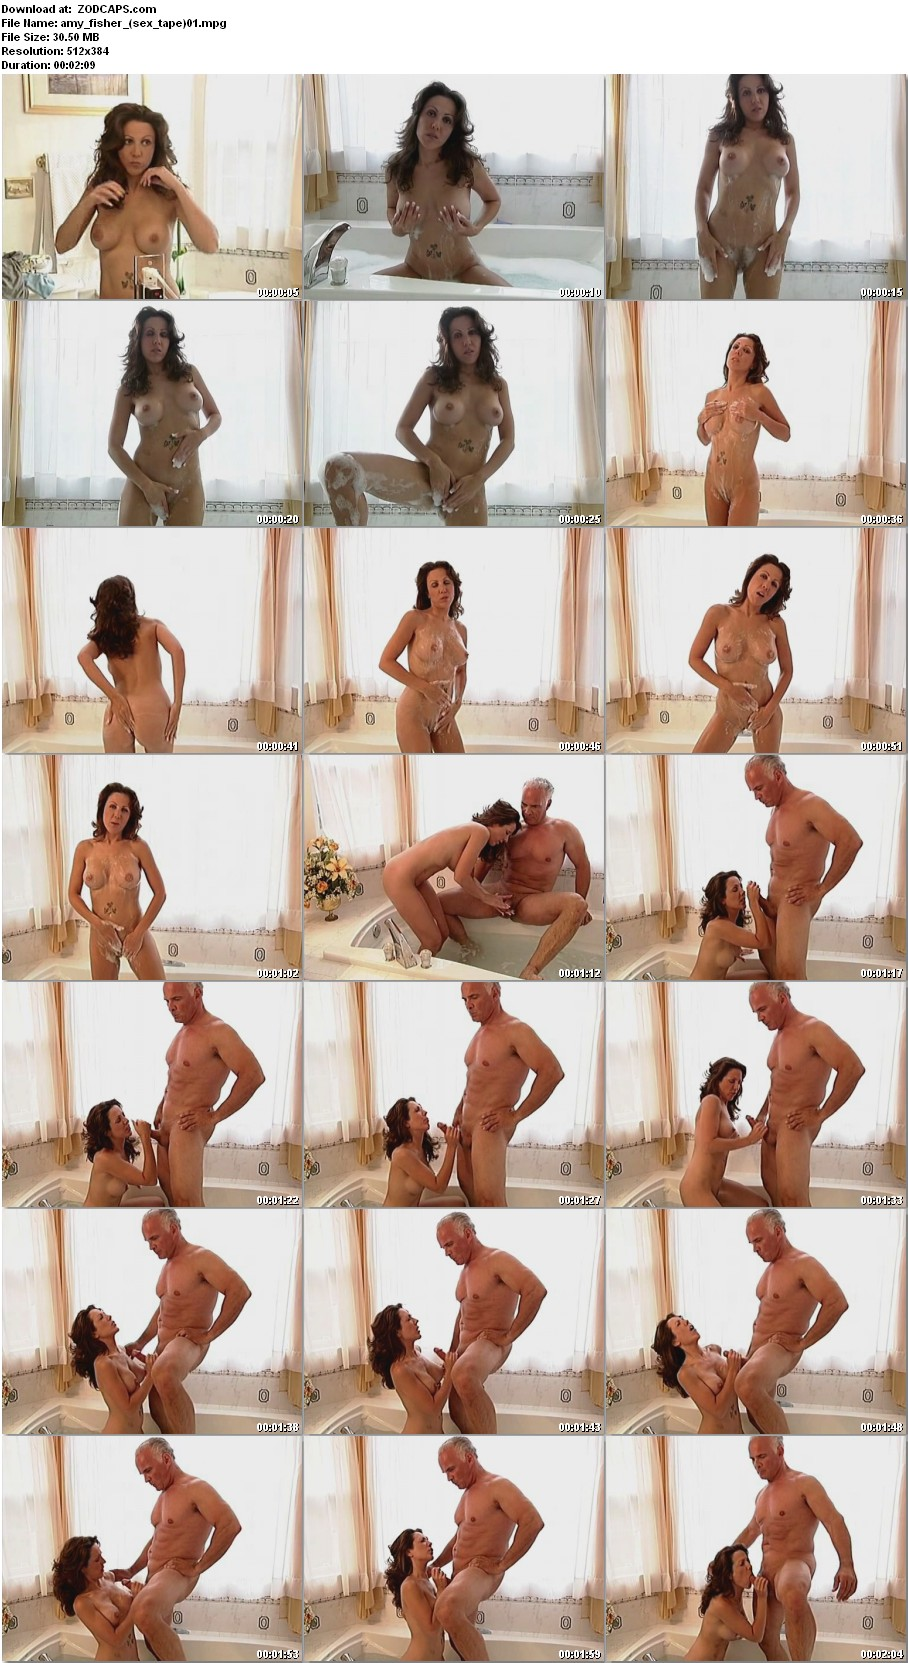 Amy Fisher Sex Tape screenshots from amy fisher's sex tape